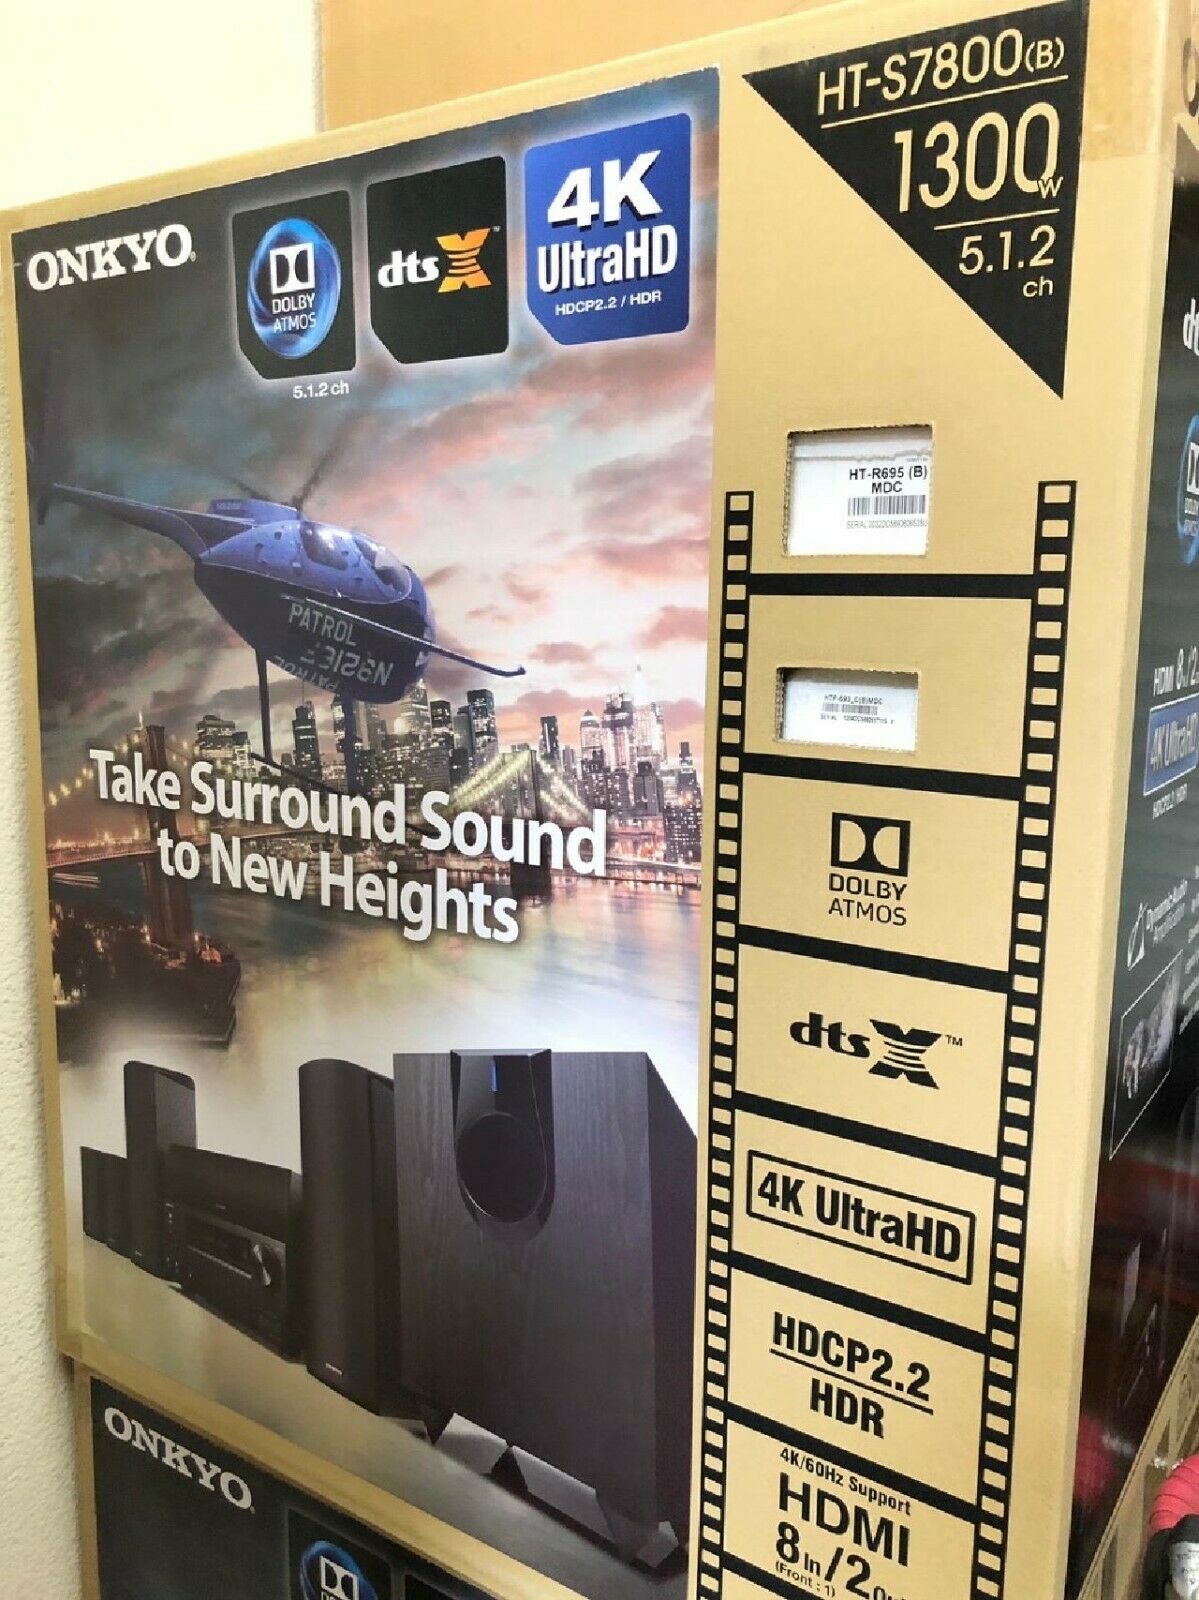 Onkyo HT-S7800 5.1.2 Channel Network Dobly Atmos Home Theate